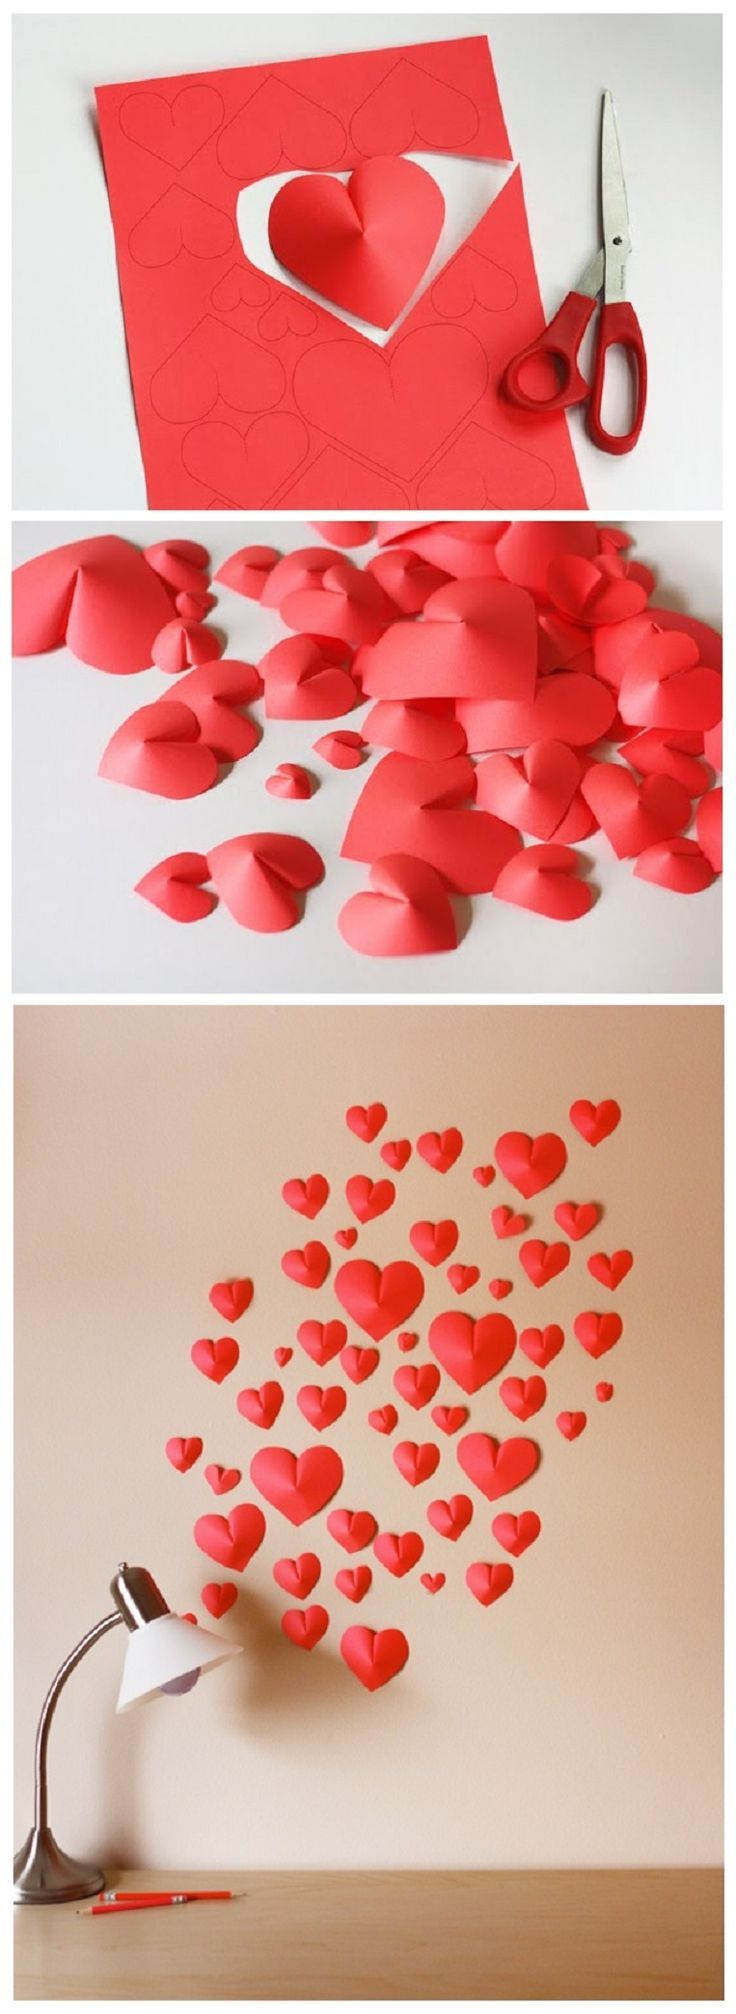 Our Favorite Pins Of The Week: Valentine's Day Projects